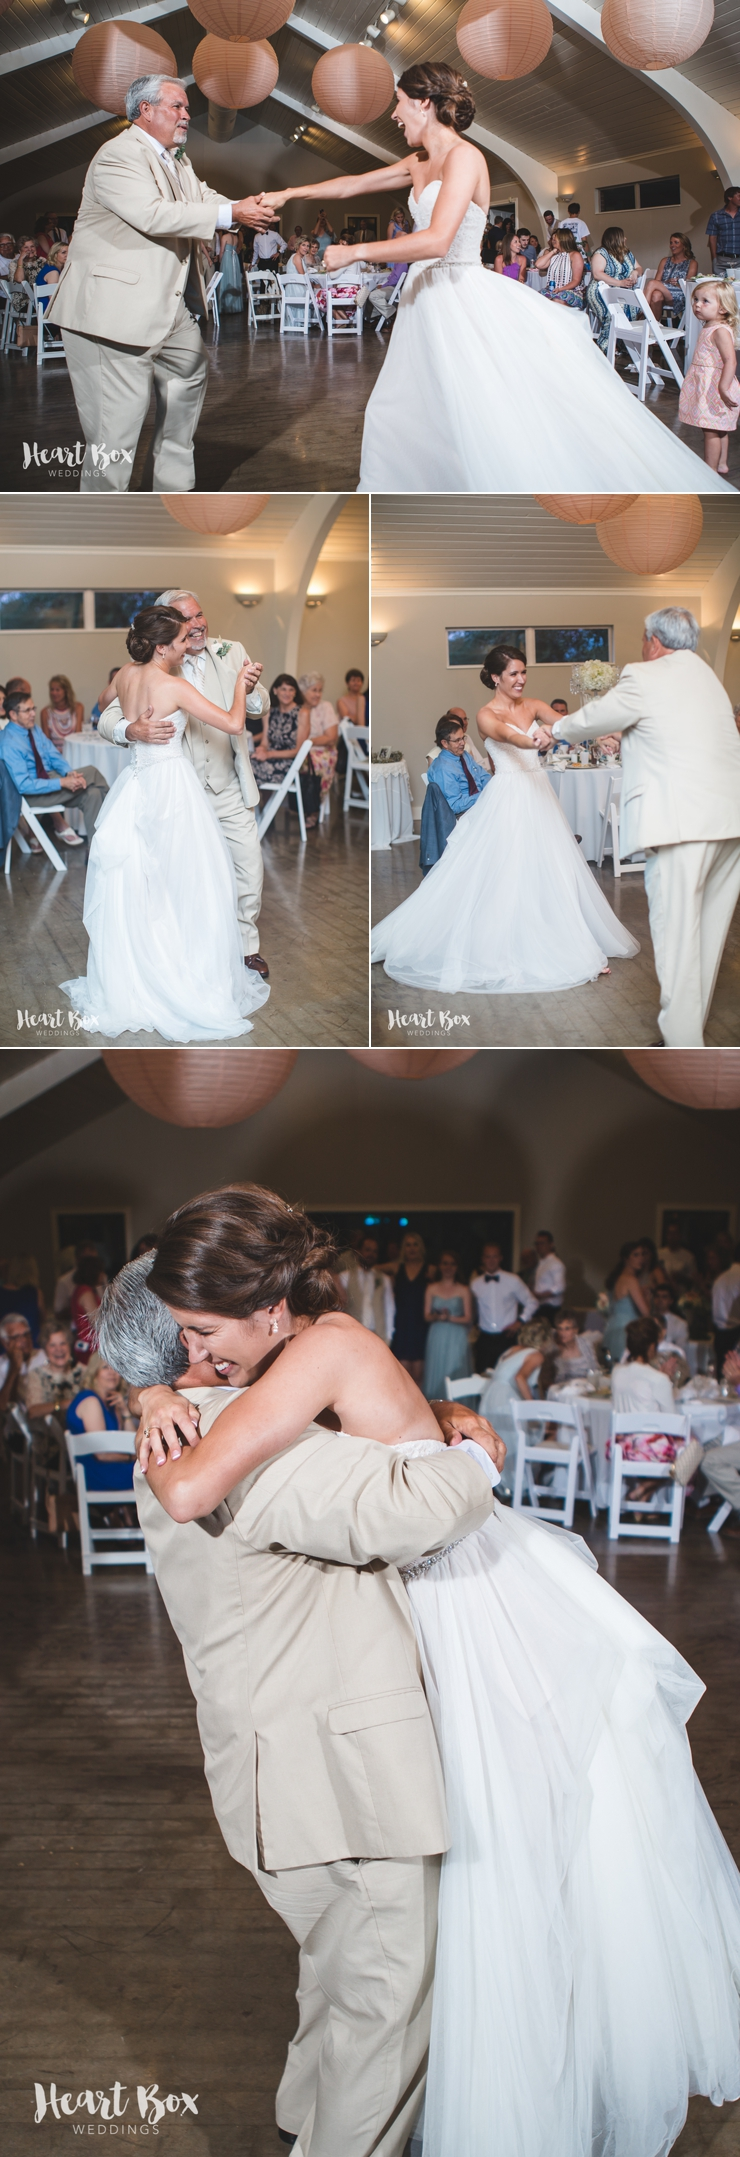 Glaser Wedding Blog Collages 21.jpg